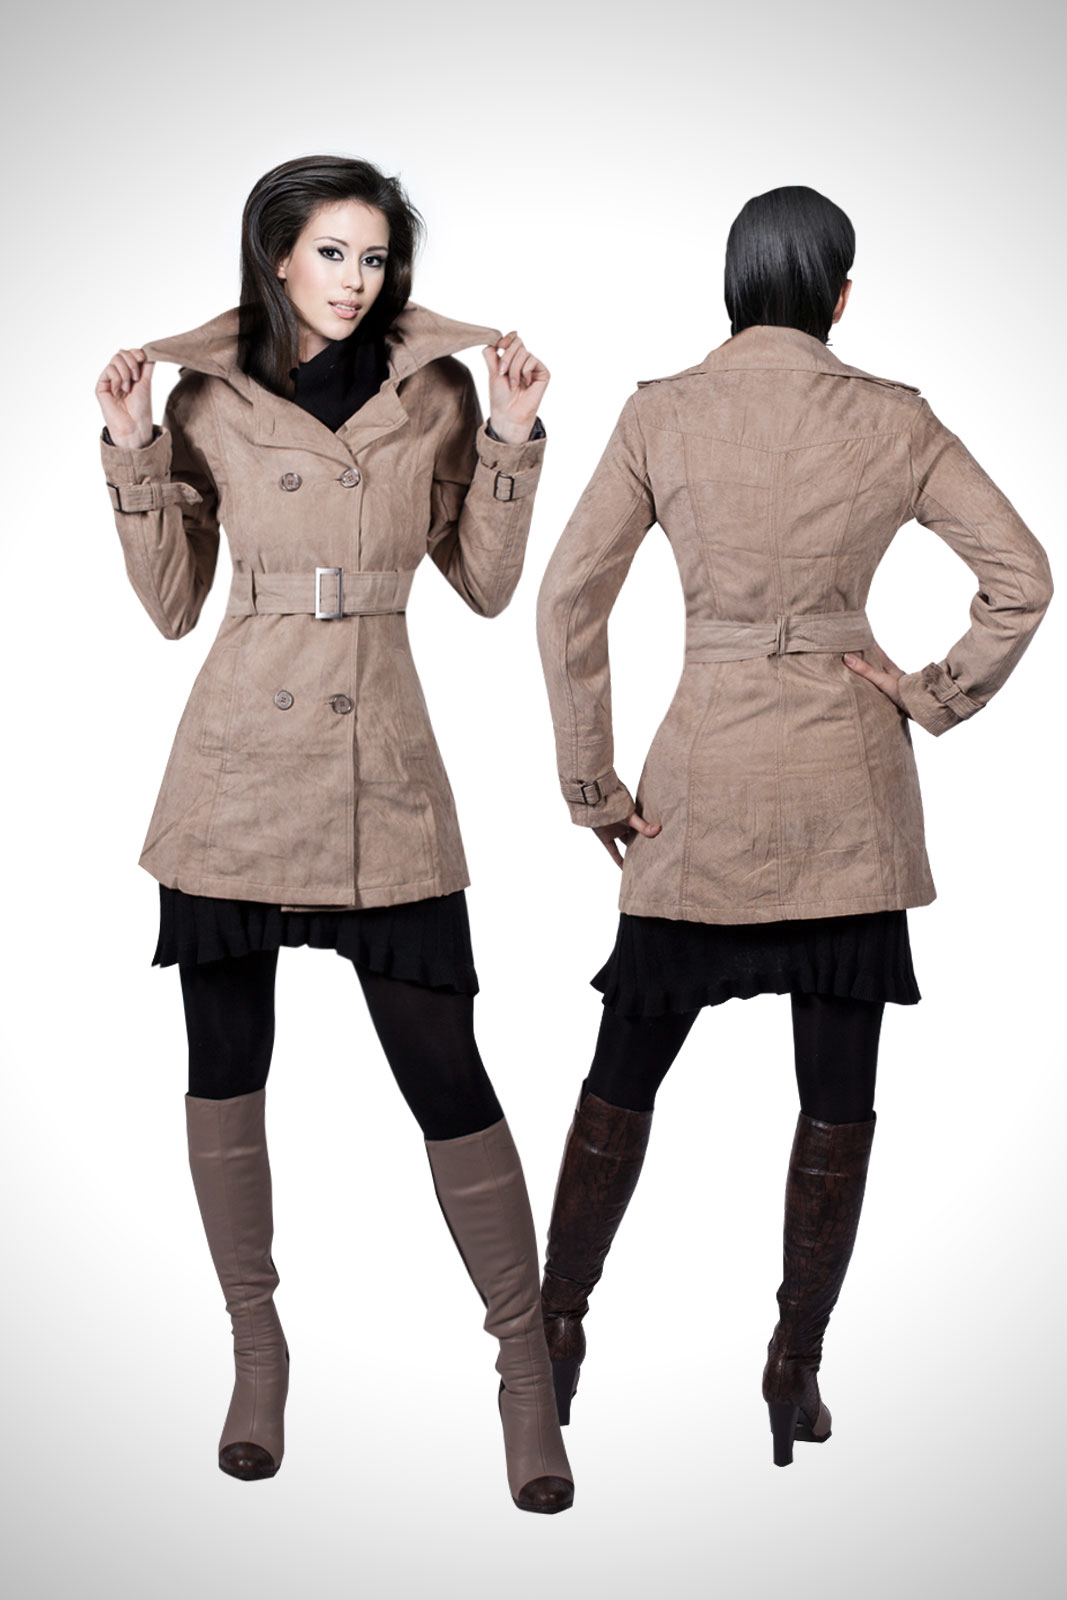 trendige trenchcoat damen jacke bergangsjacke wildlederimitat mantel s m l xl ebay. Black Bedroom Furniture Sets. Home Design Ideas